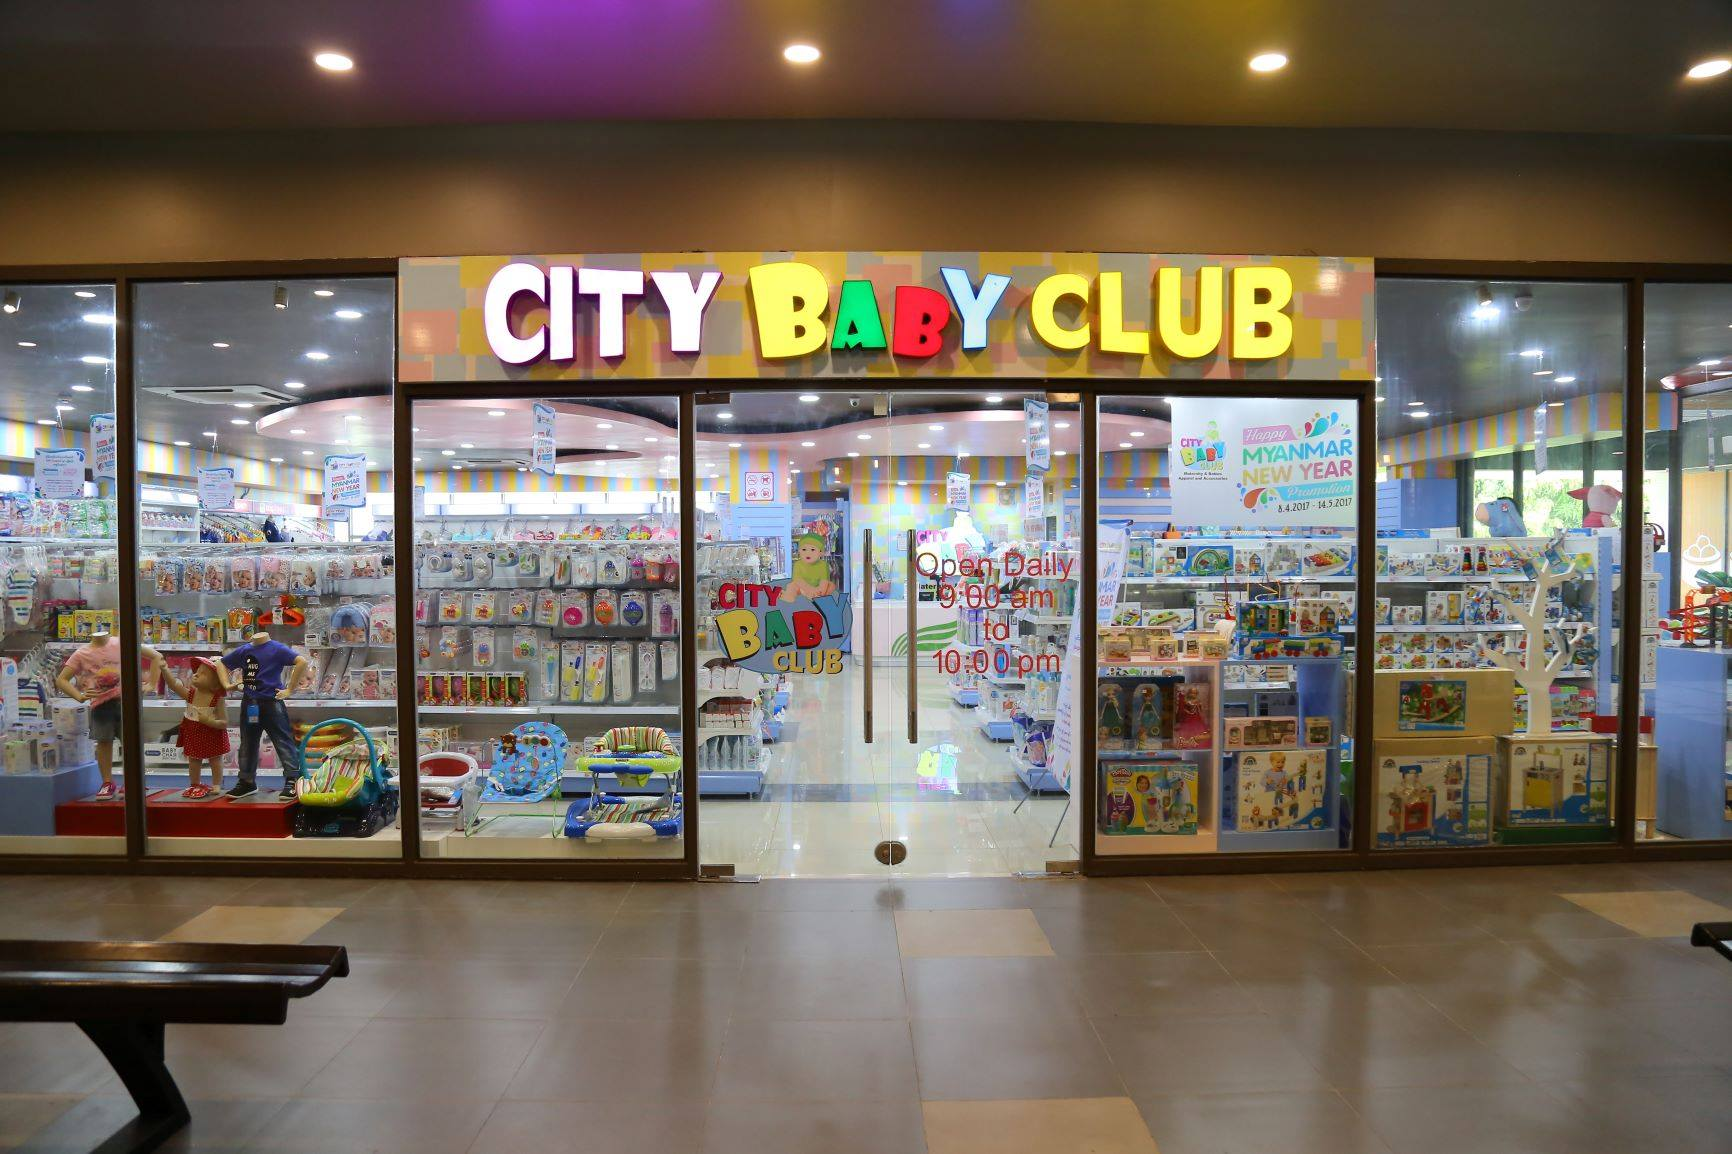 City Baby Club @ 6.5 Miles - Yangon